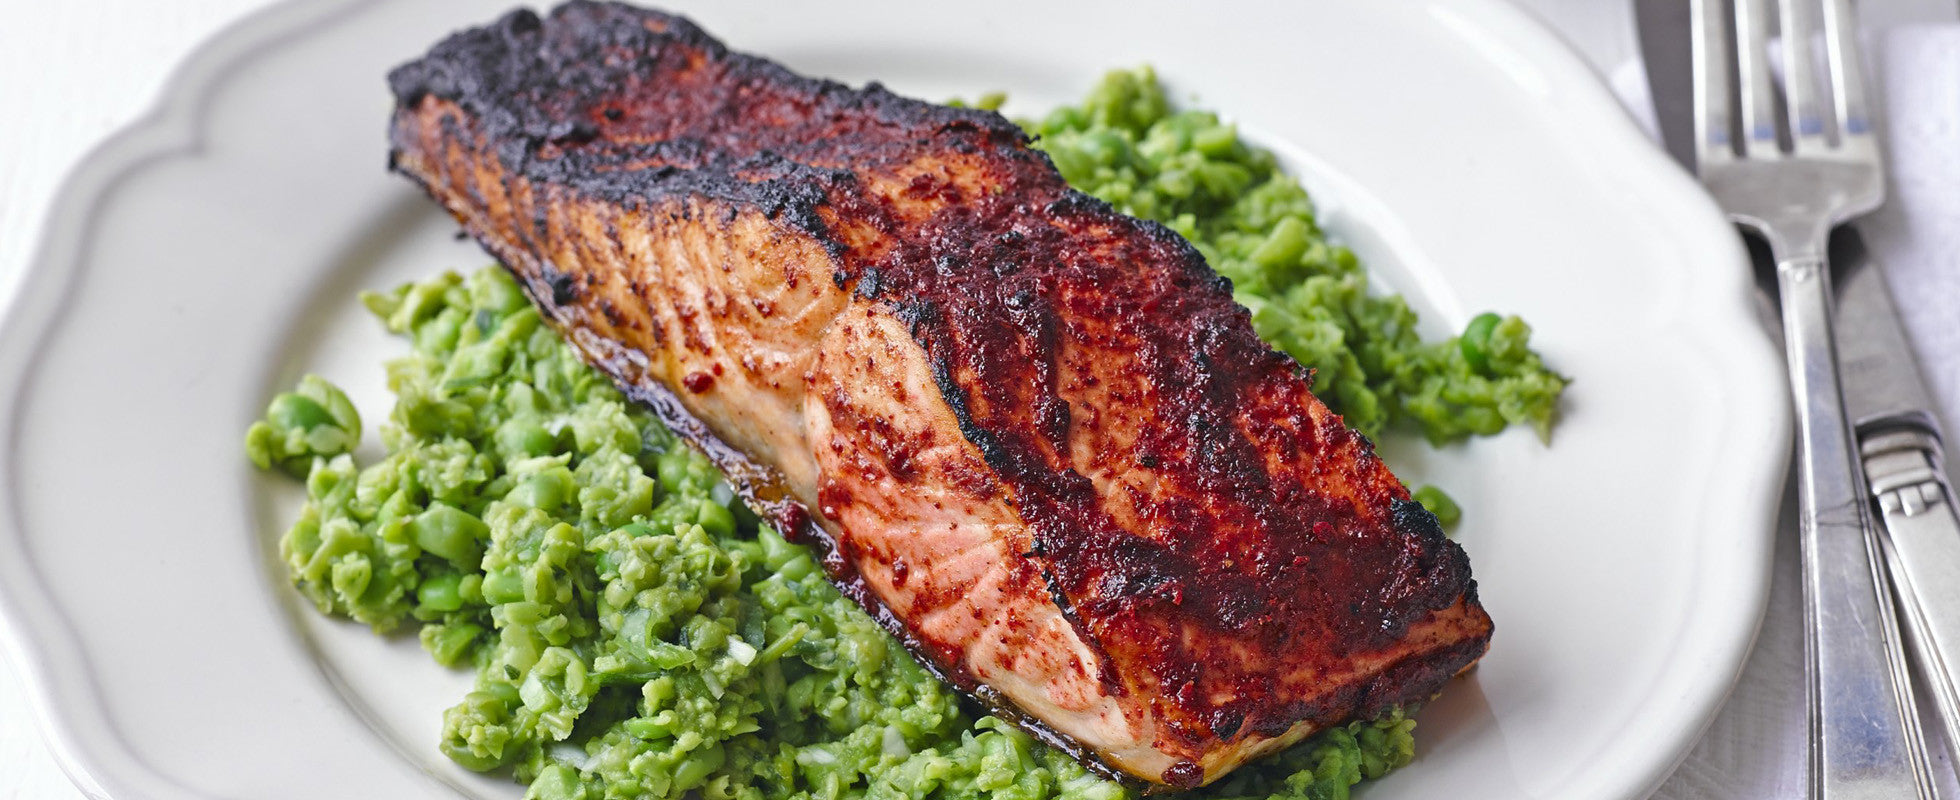 #RecipeSaviours: Spiced Grilled Salmon With Pea And Mint Mash